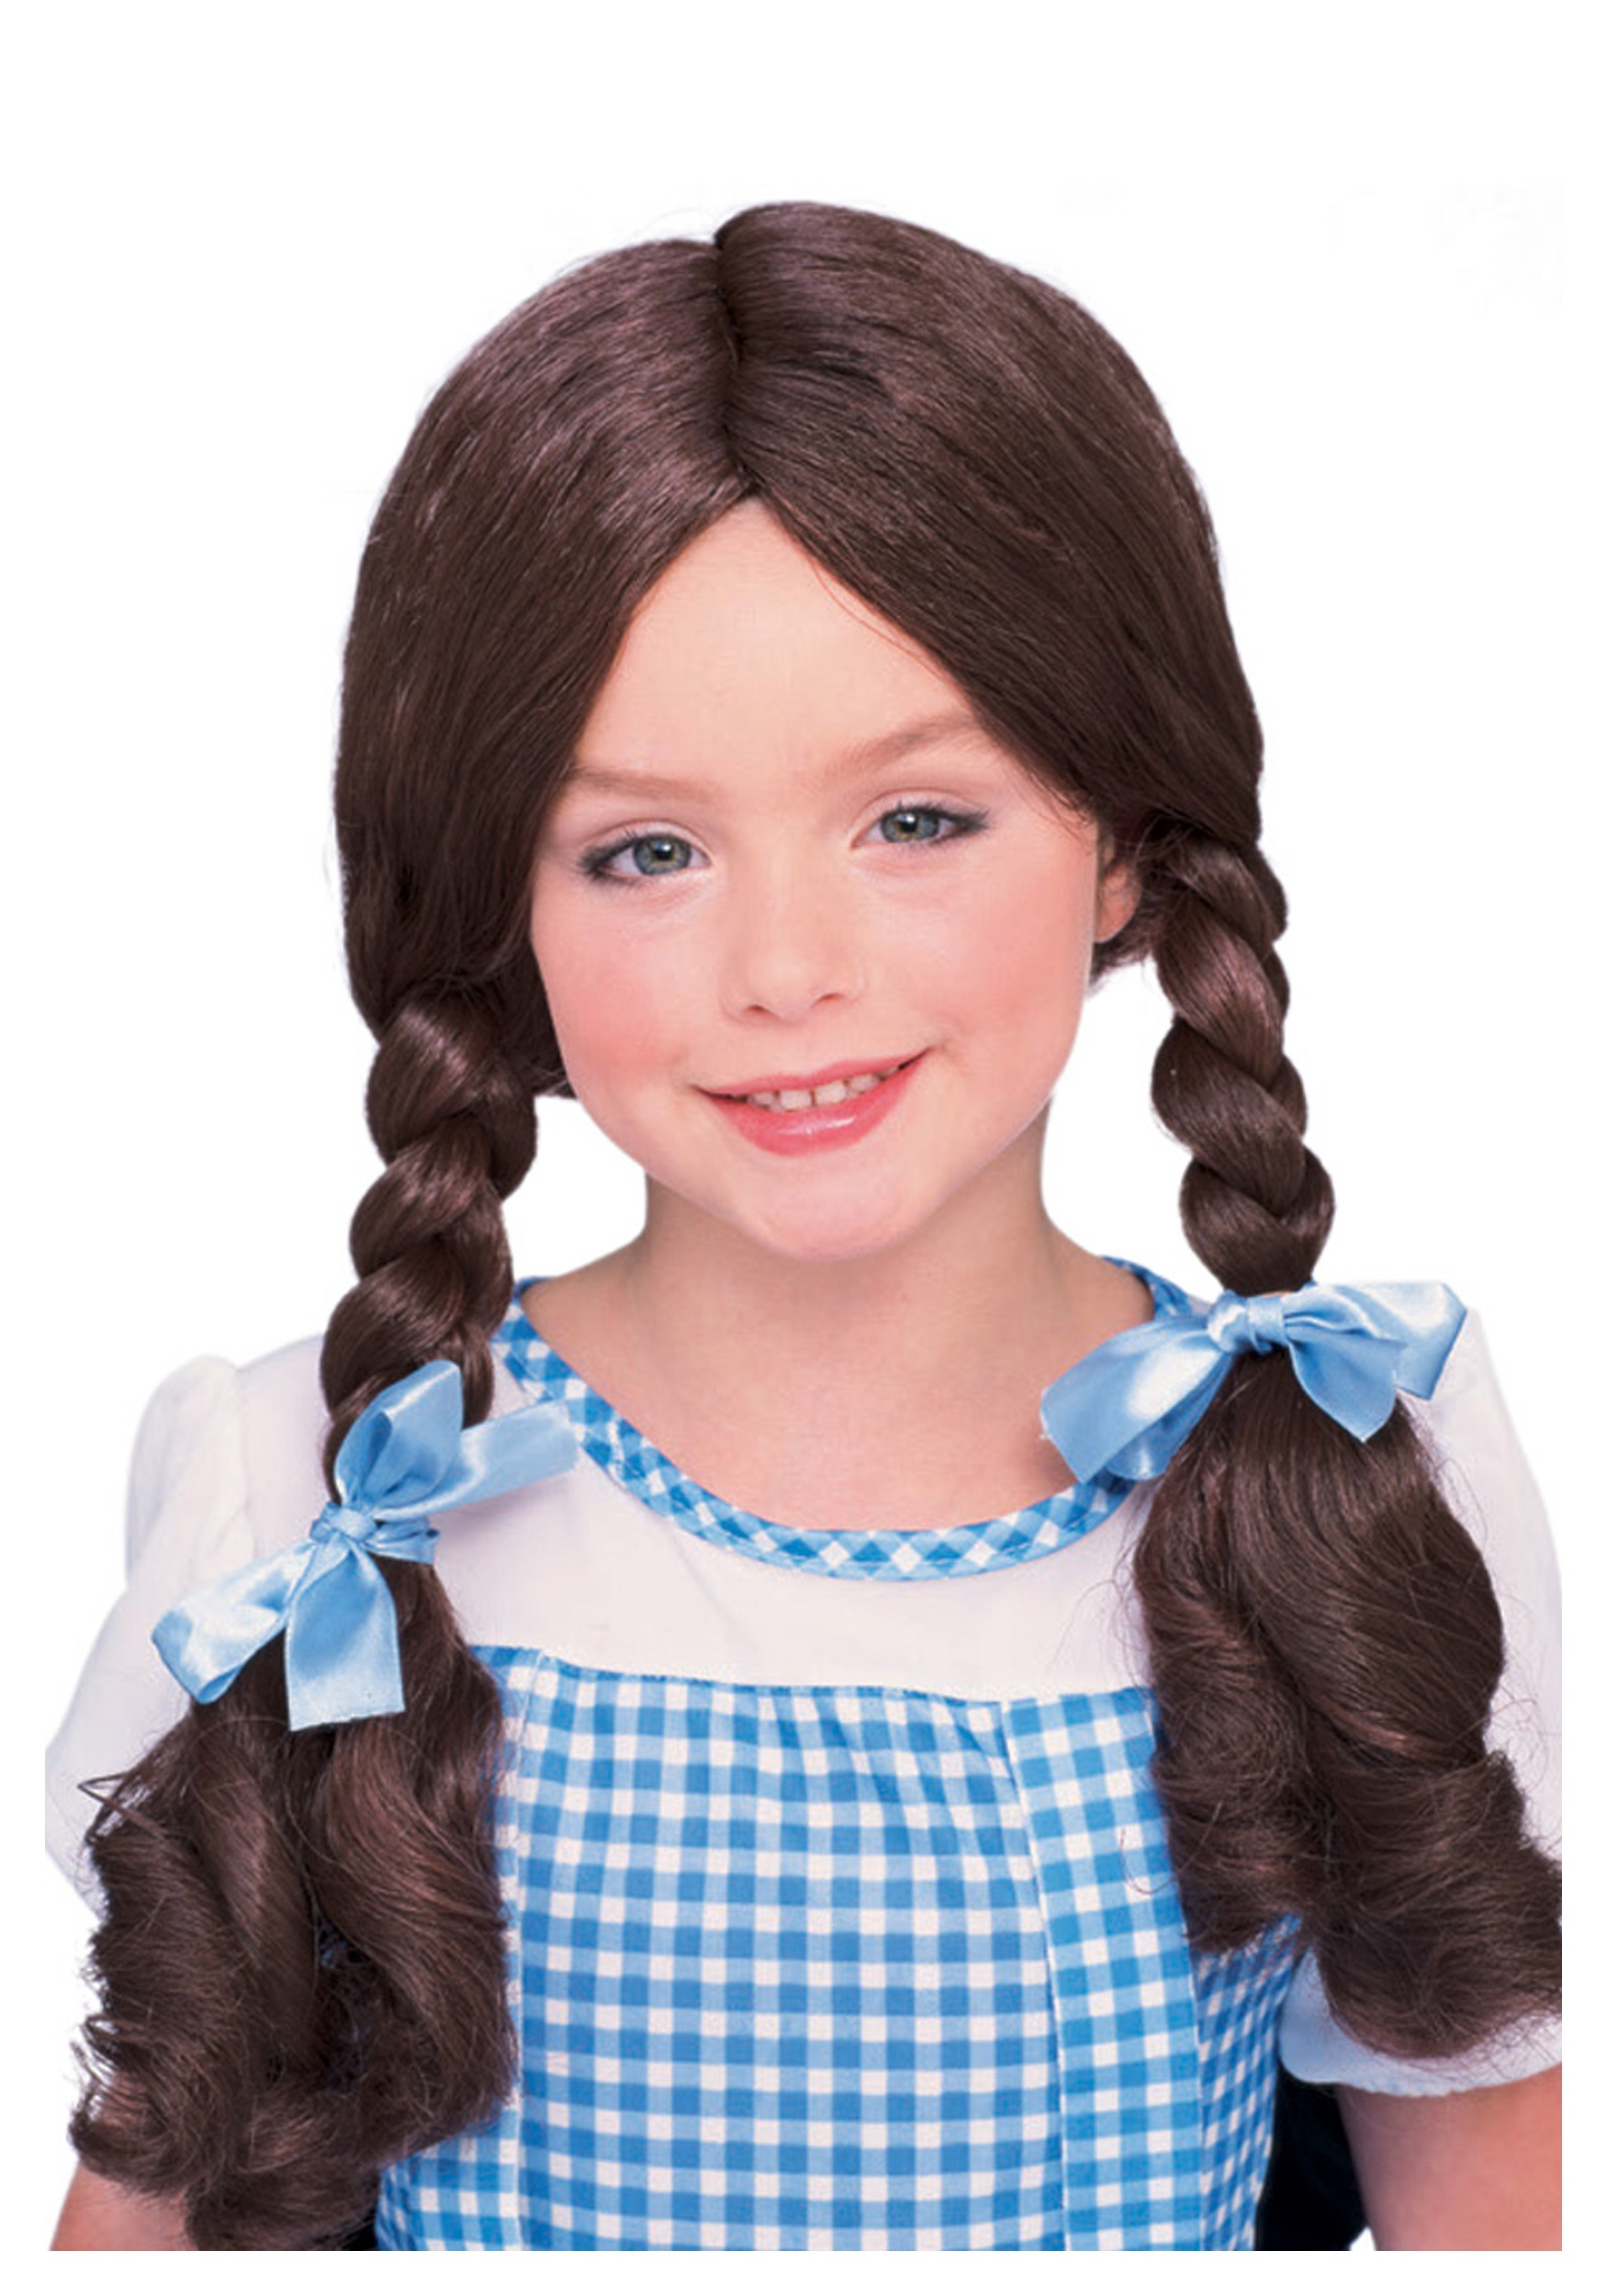 Children'S Halloween Wigs - Realistic Lace Front Wig